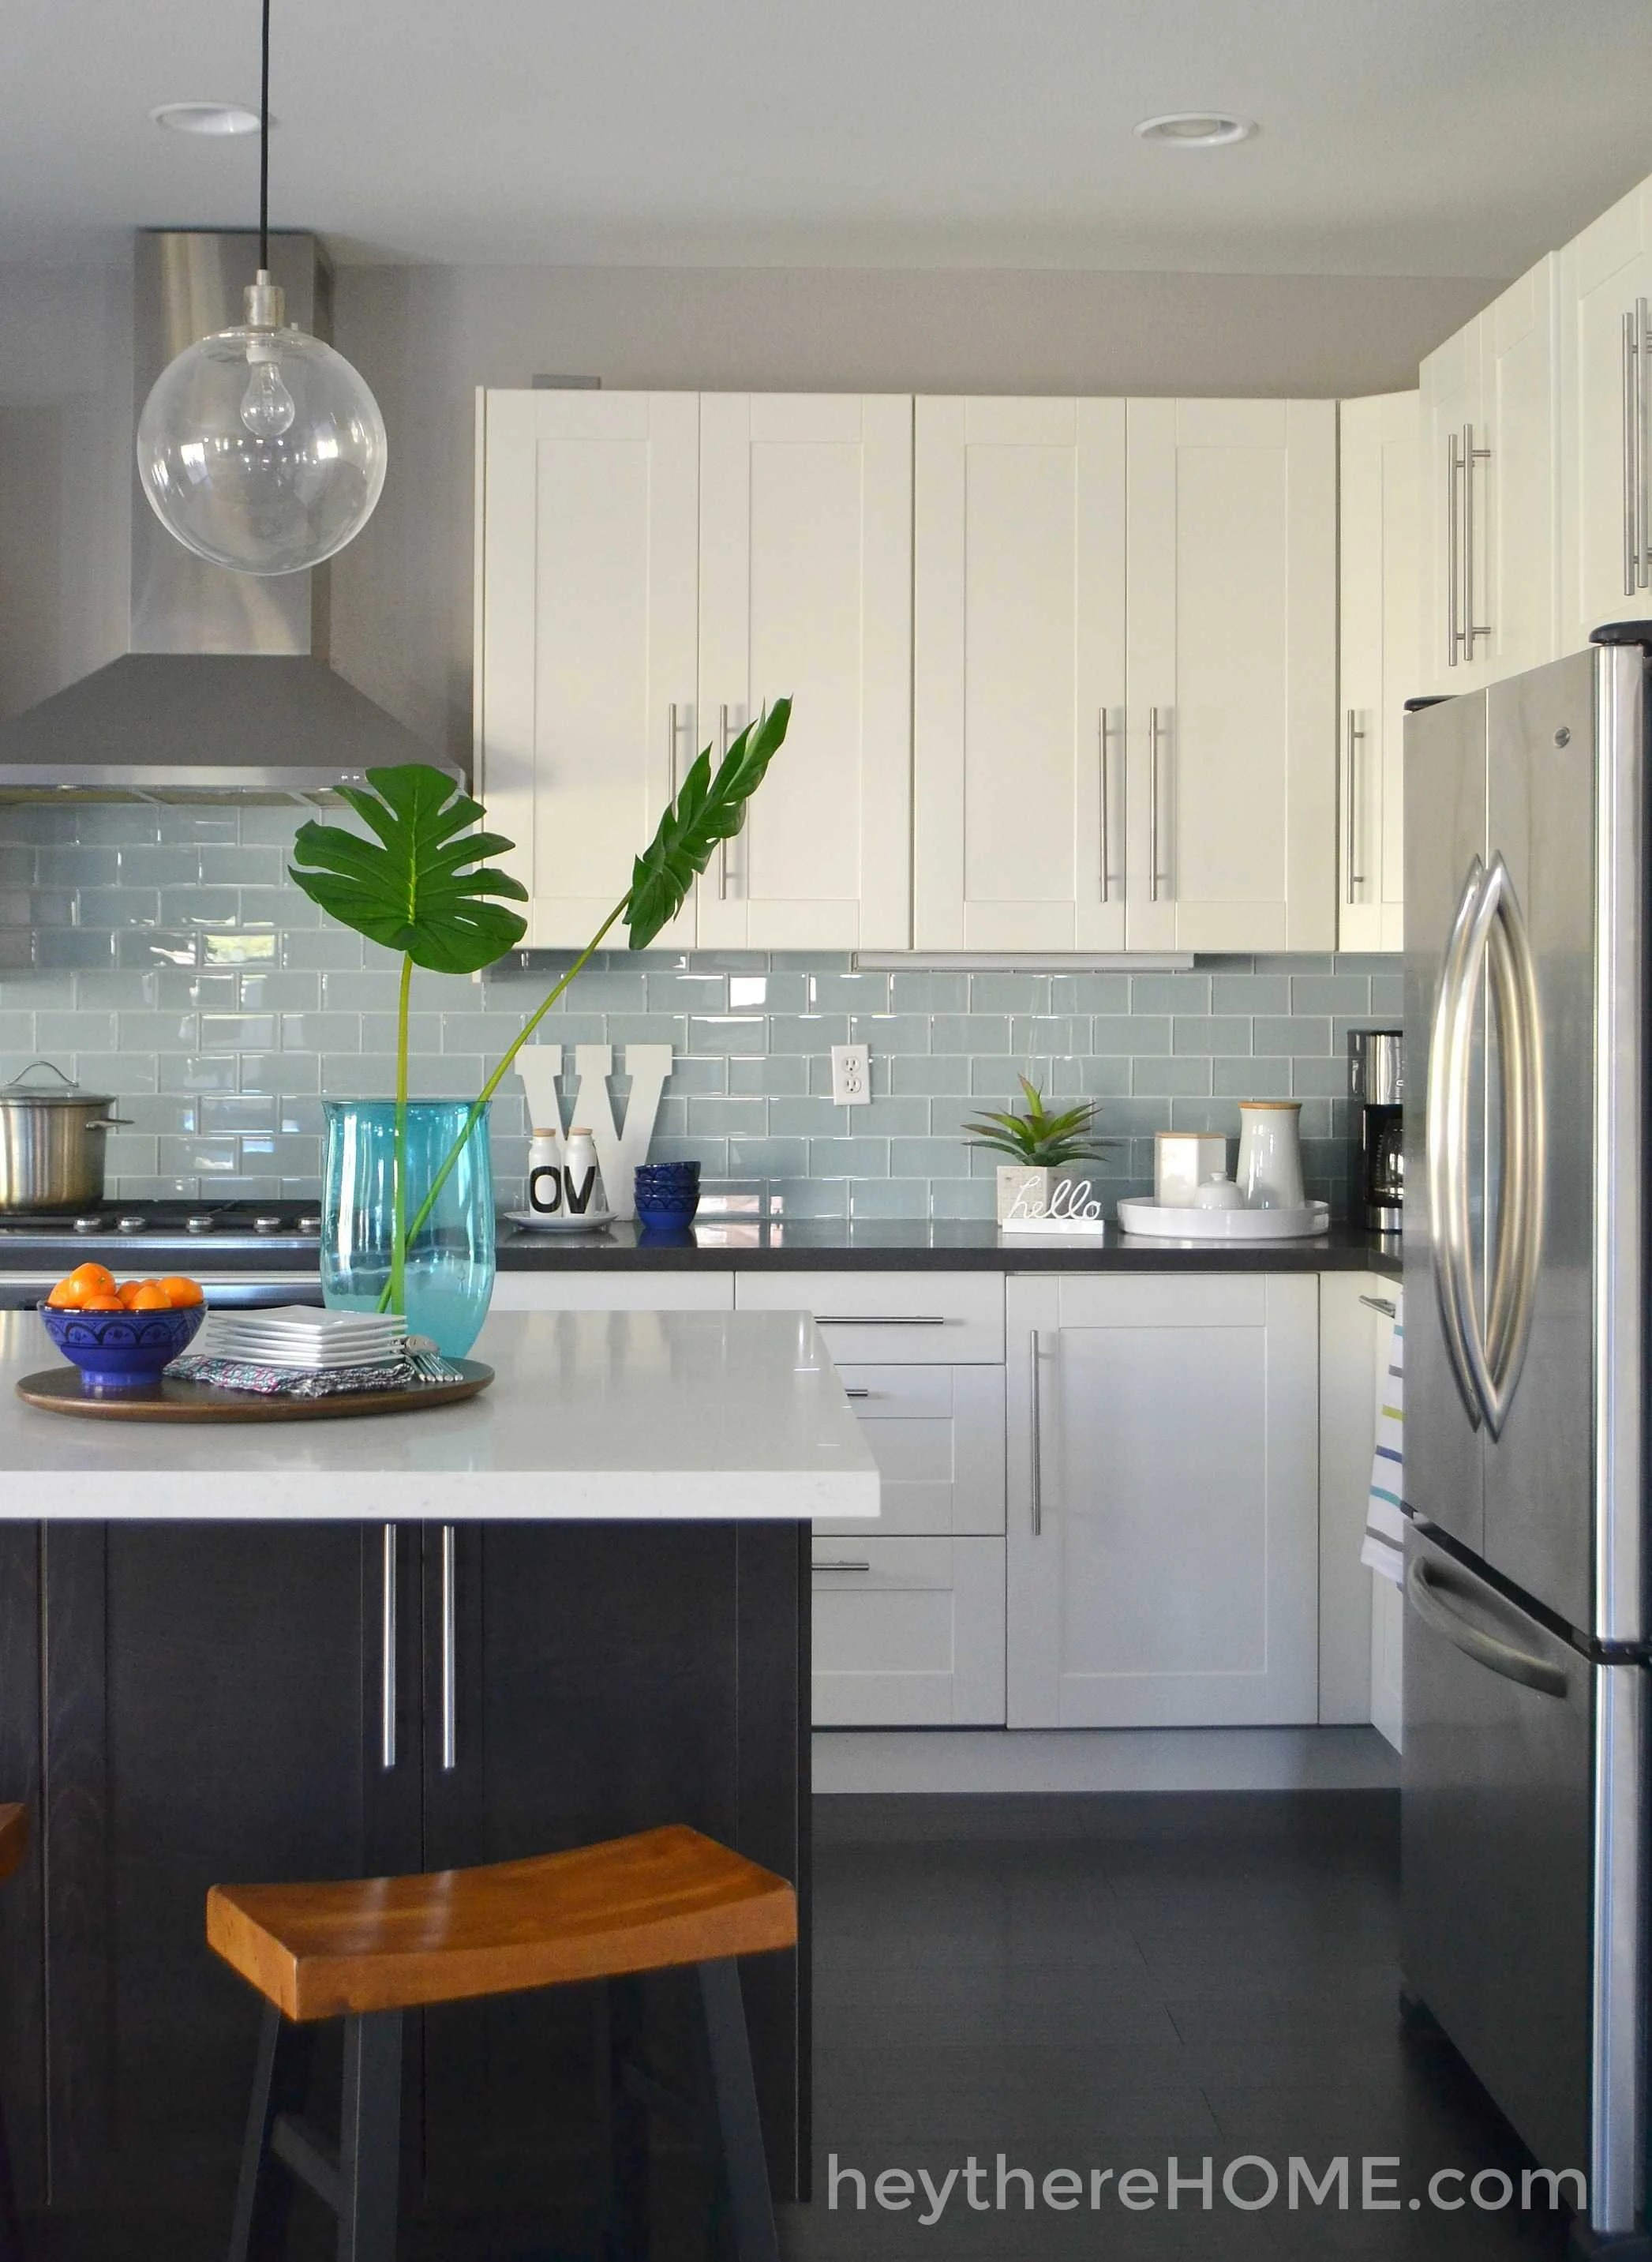 Geschirrschrank Ikea Kitchen Remodel Ideas That Add Value To Your Home